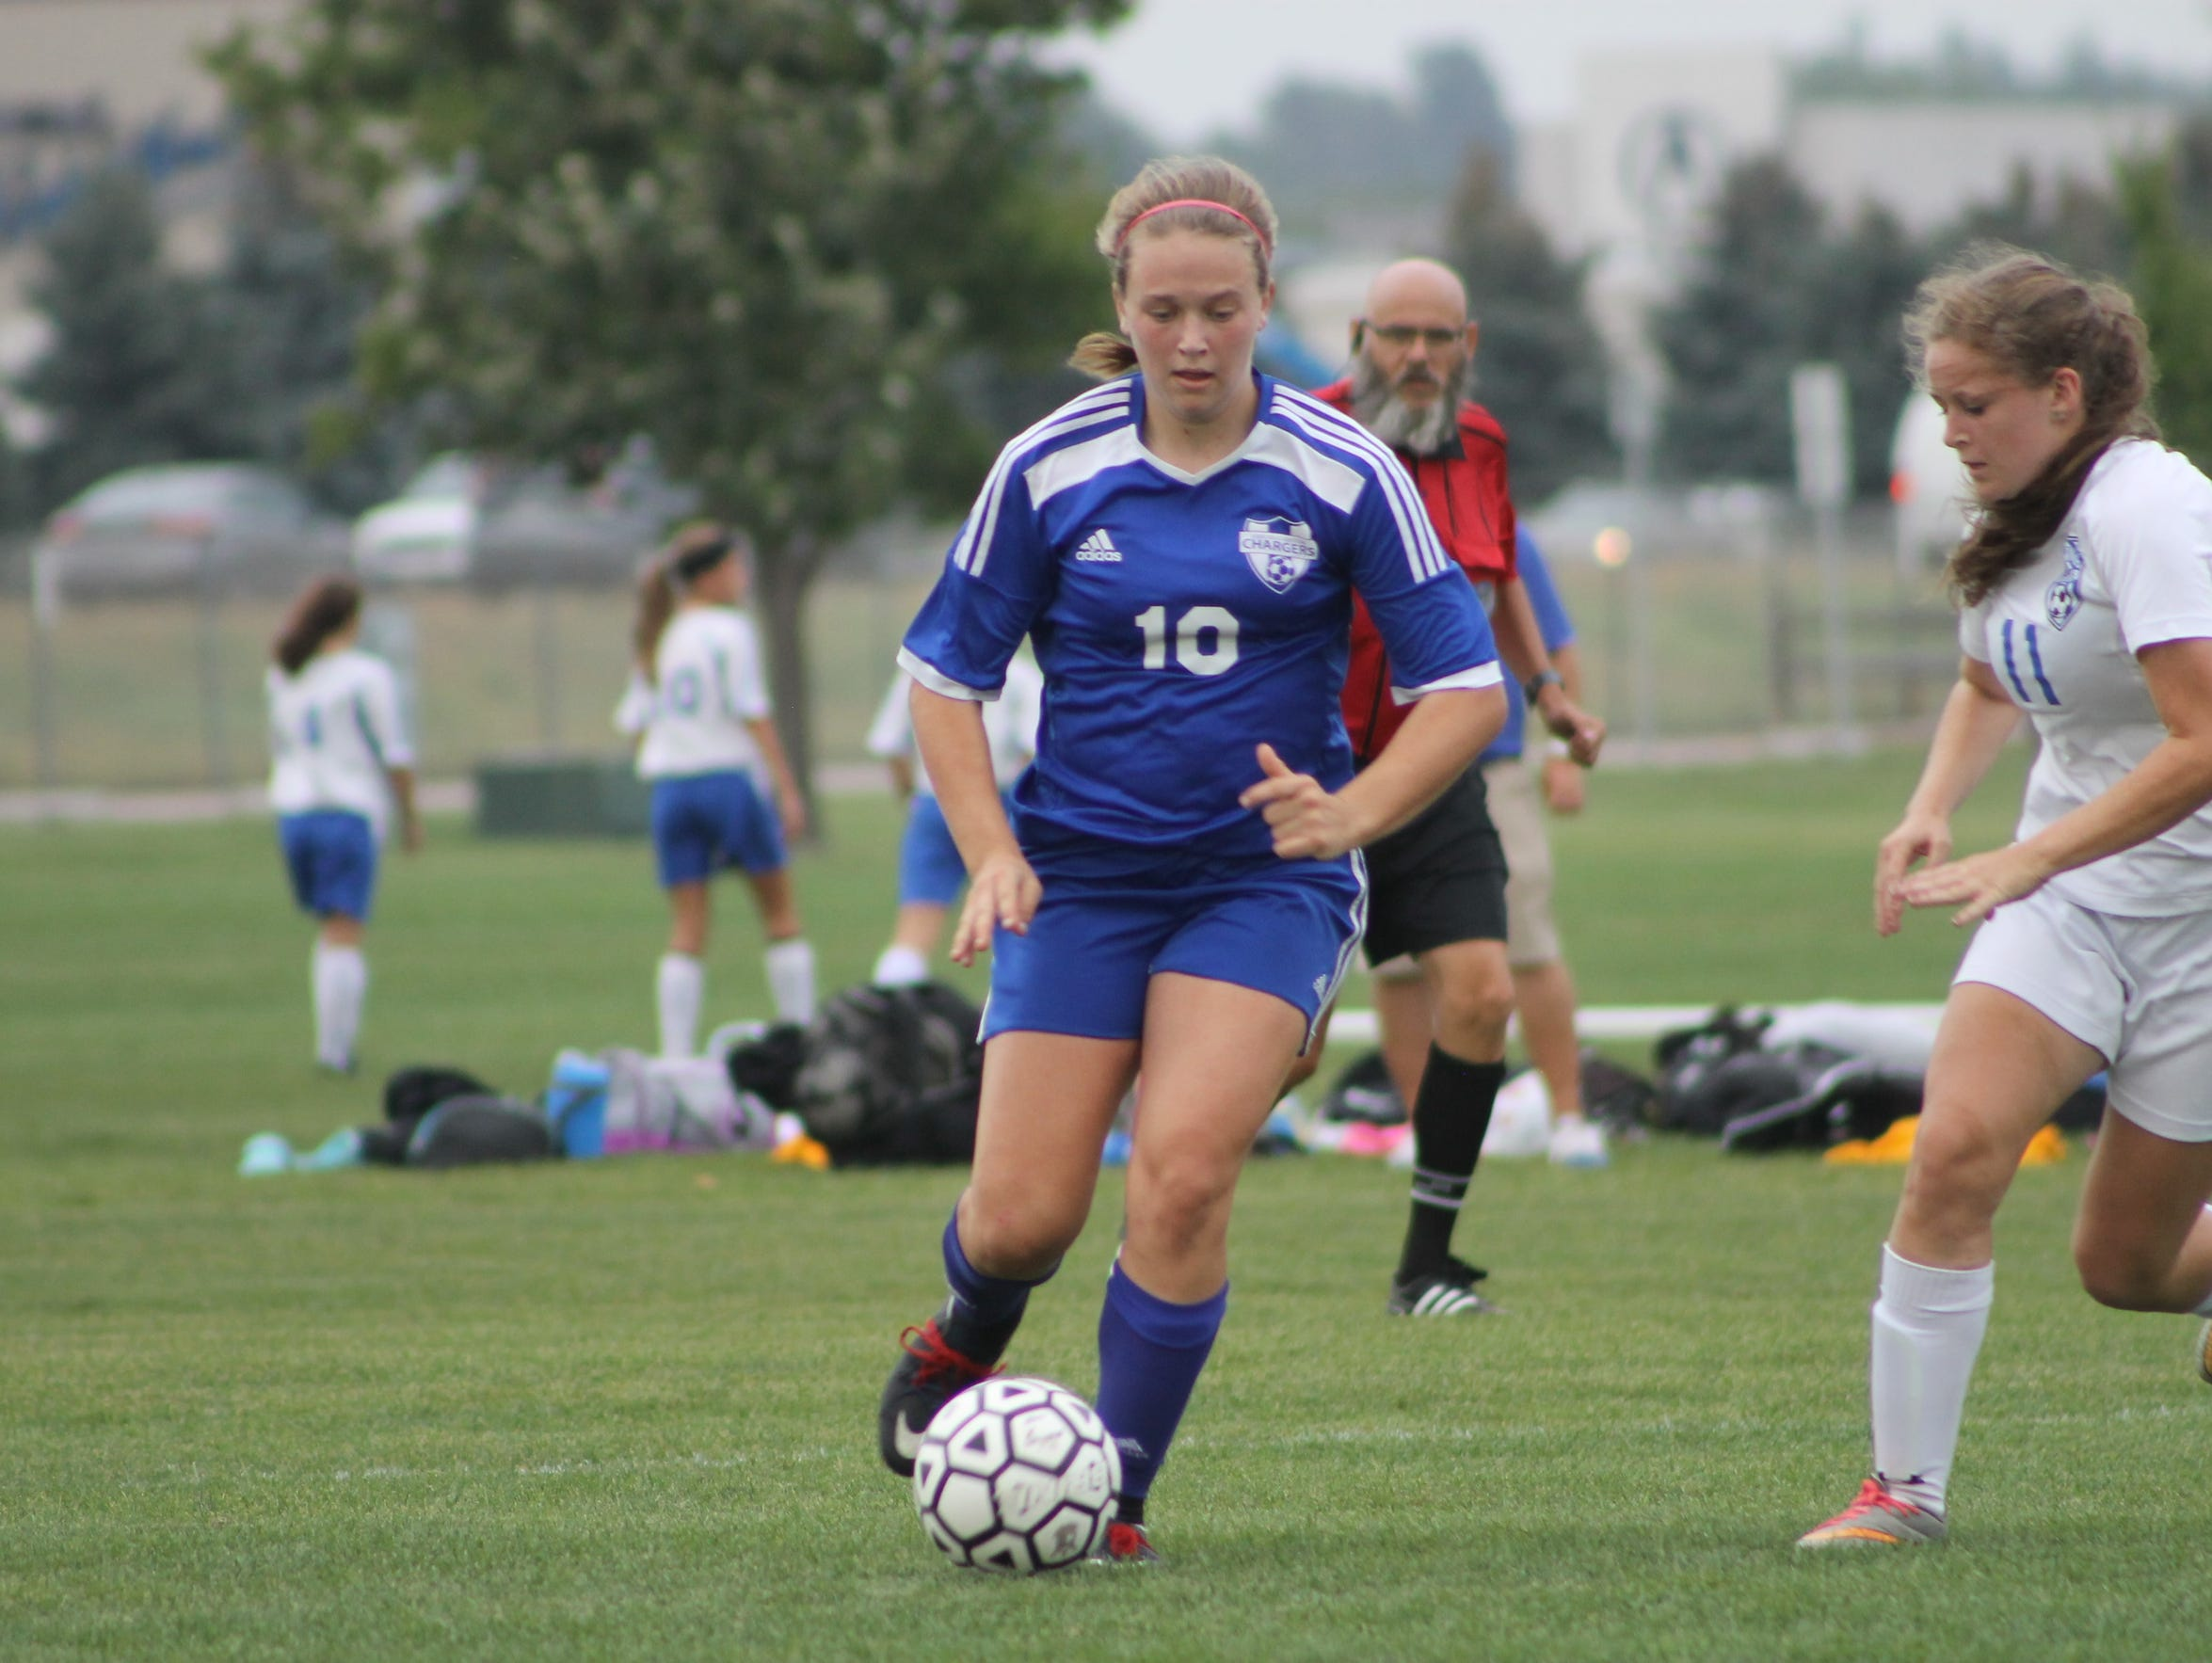 Ellie Schock of Sioux Falls Christian sustained a concussion